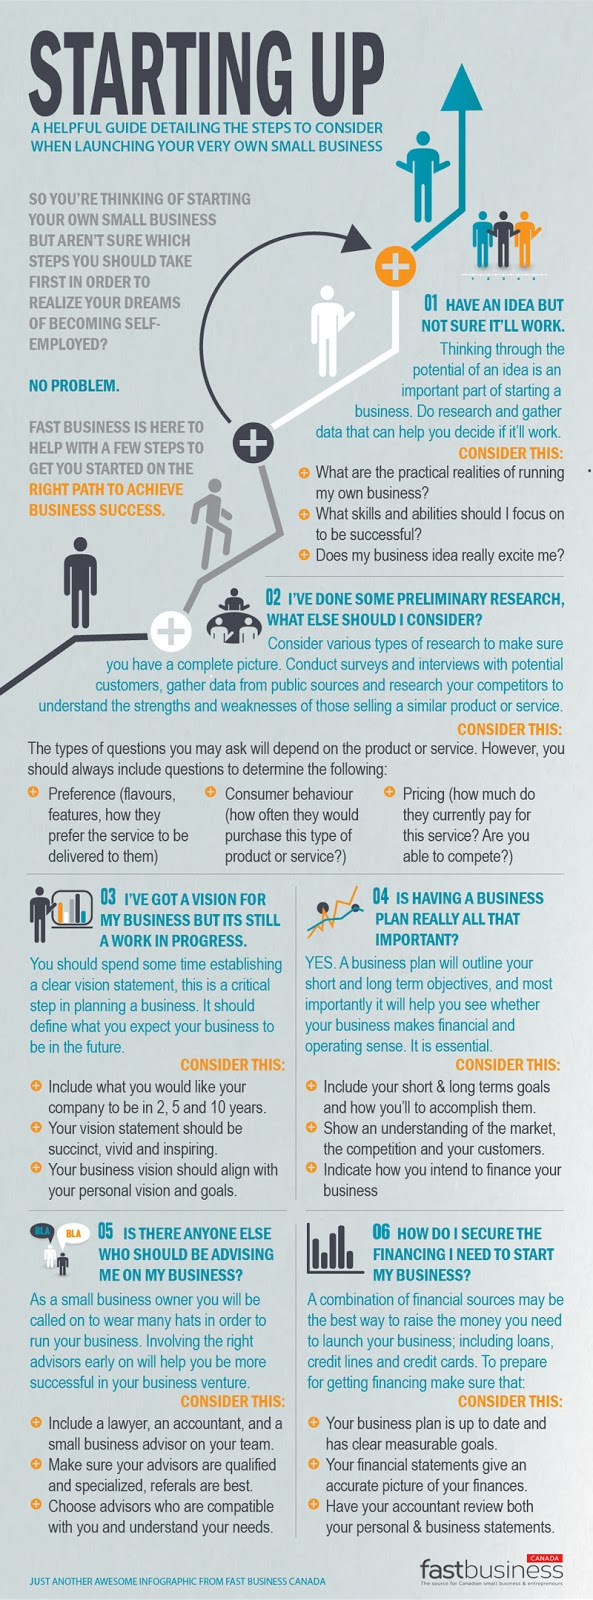 How-to-Start-your-own-small-business-6-steps-startup-guide-Infographic.jpg